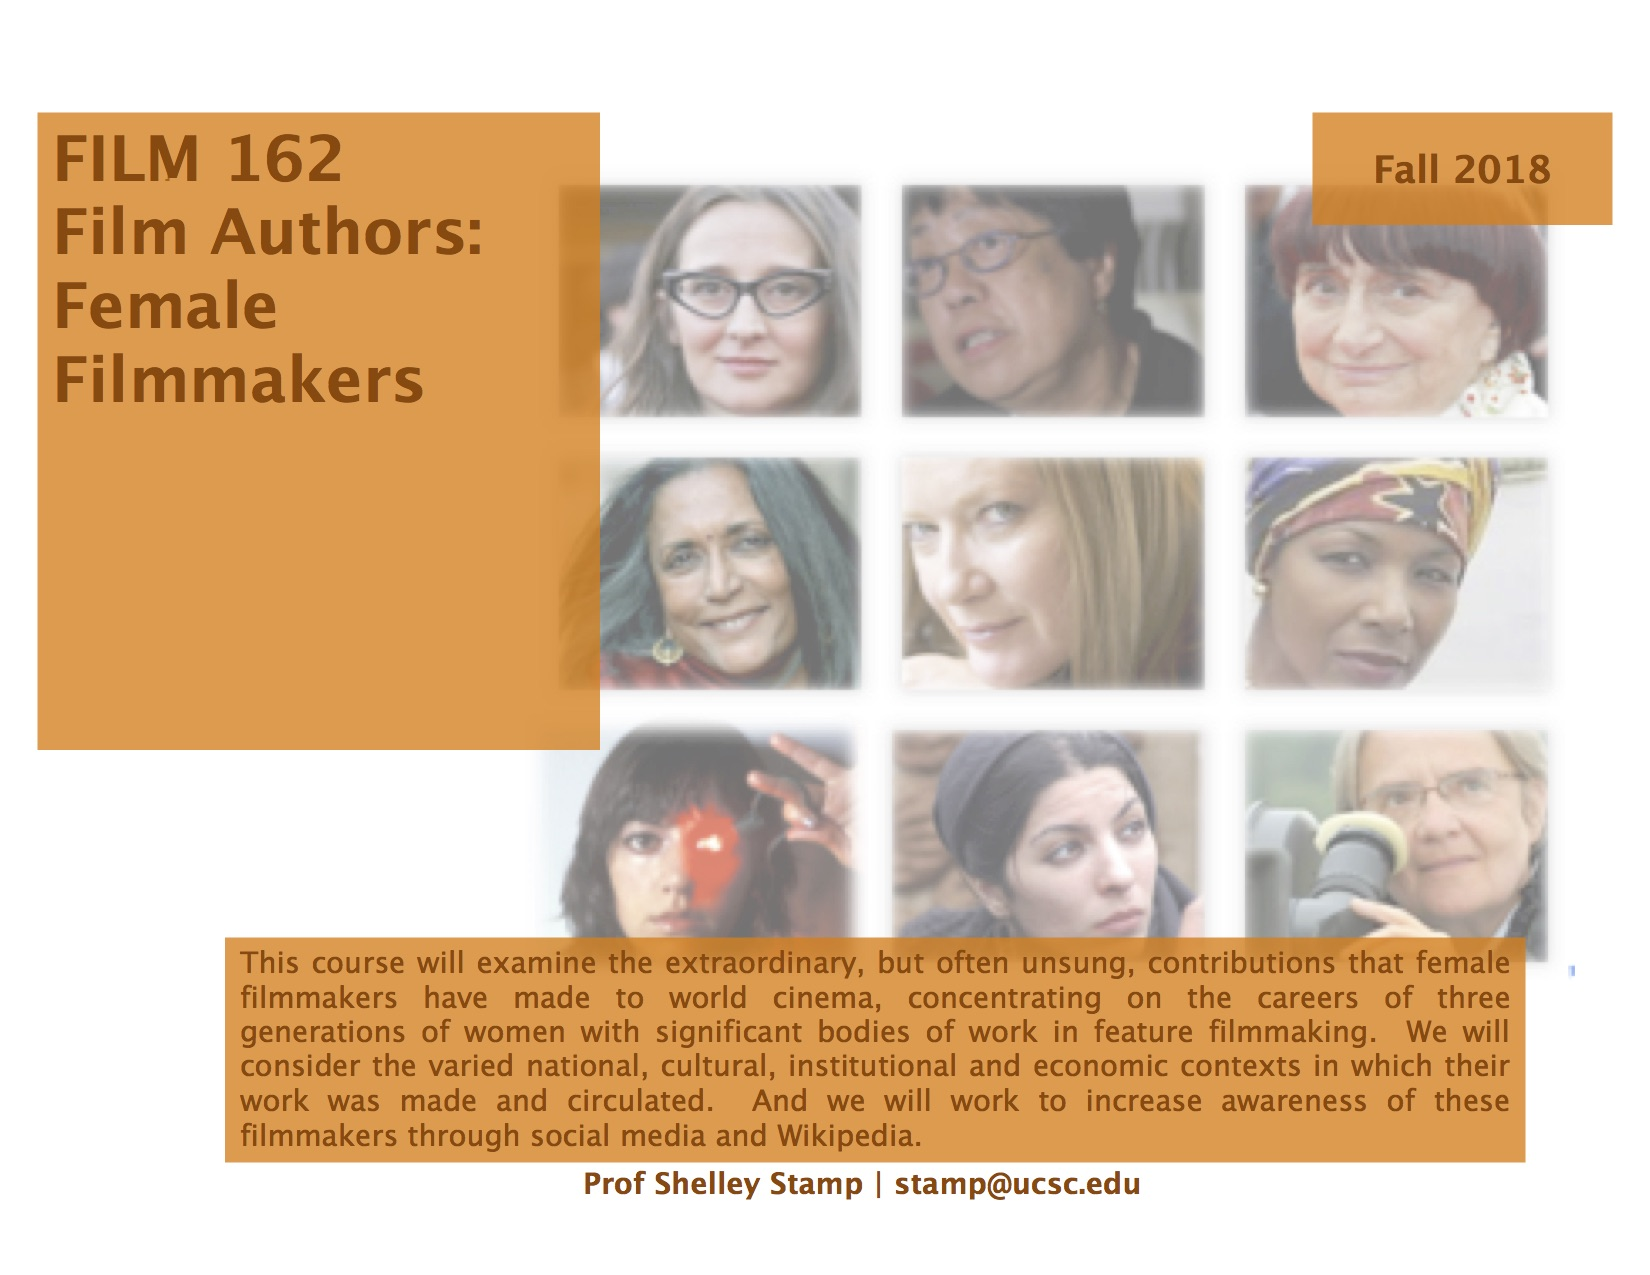 course flyer for FILM 162 Film Authors Female filmmakers